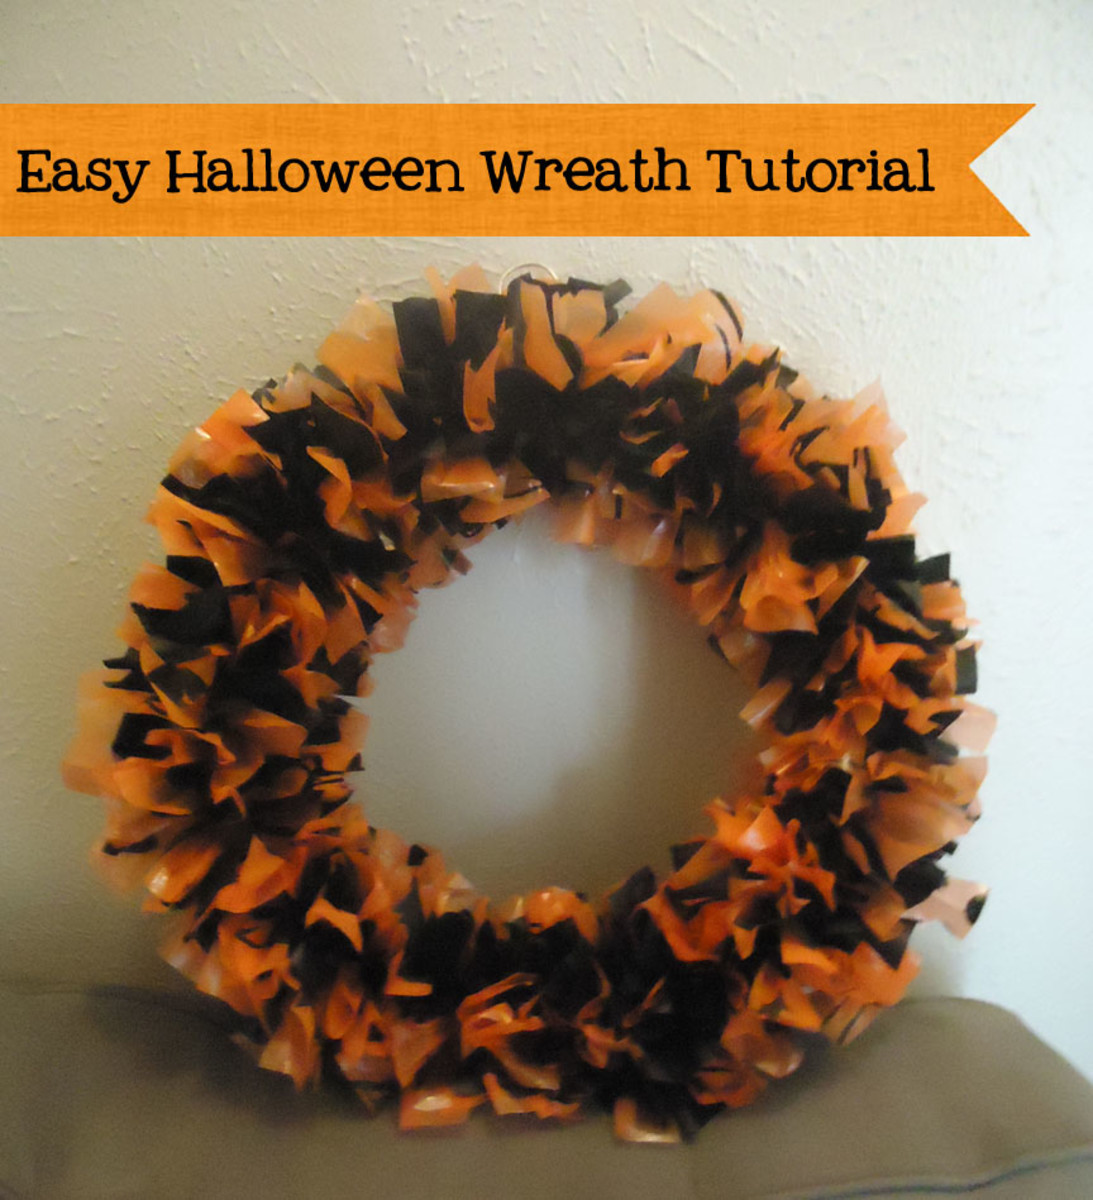 DIY Halloween wreath. Easy and inexpensive to make!